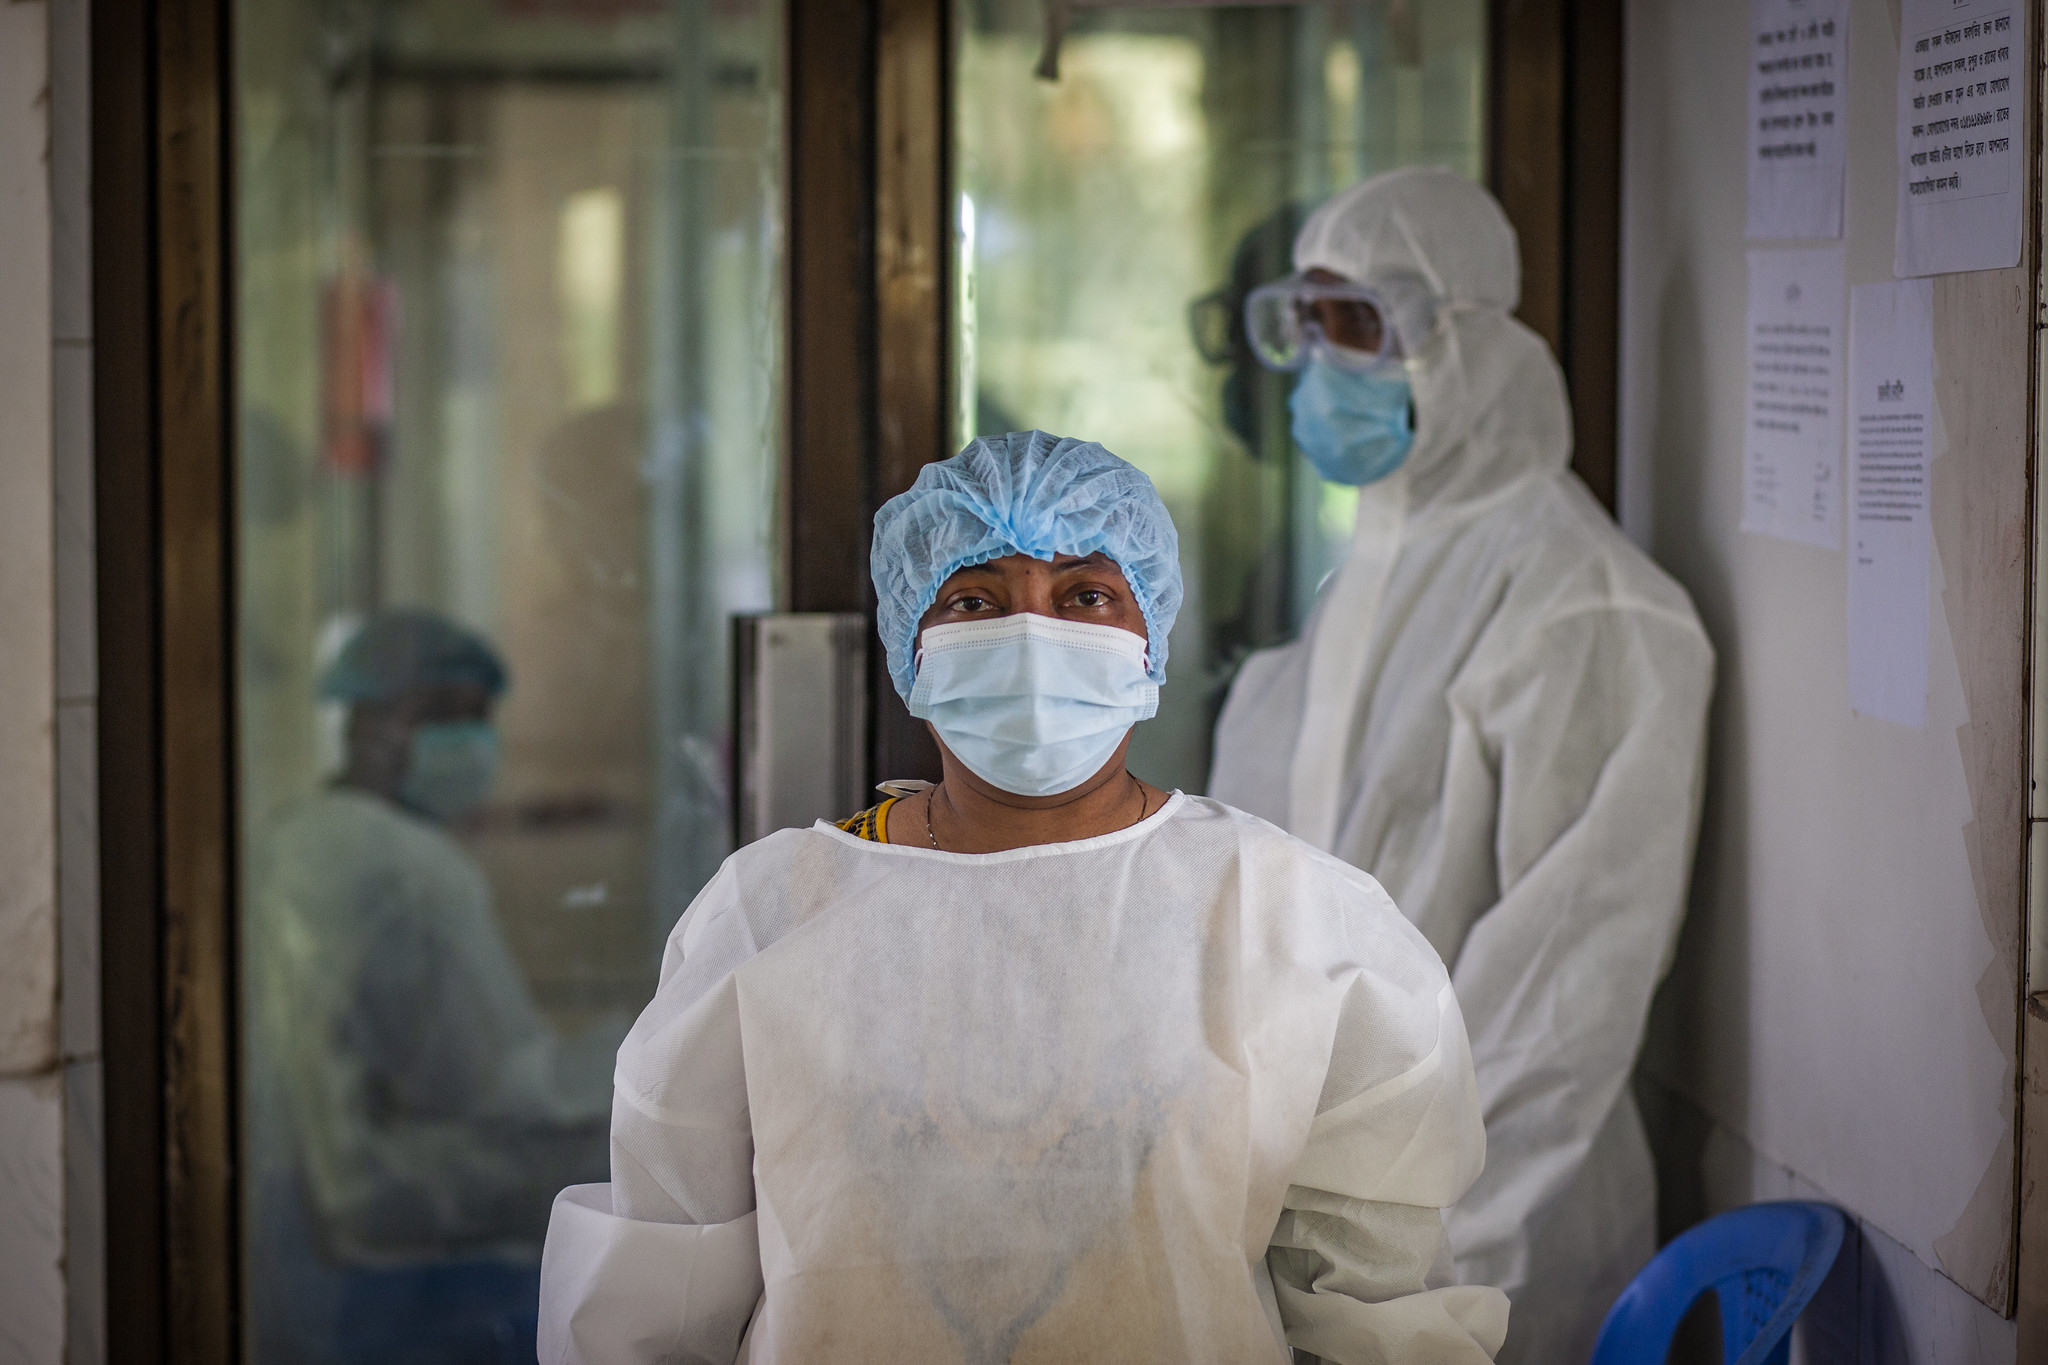 A cleaner waiting to begin her duty after getting disinfected at the Narayanganj-based Sajida Foundation hospital's isolation unit for coronavirus-infected patients.